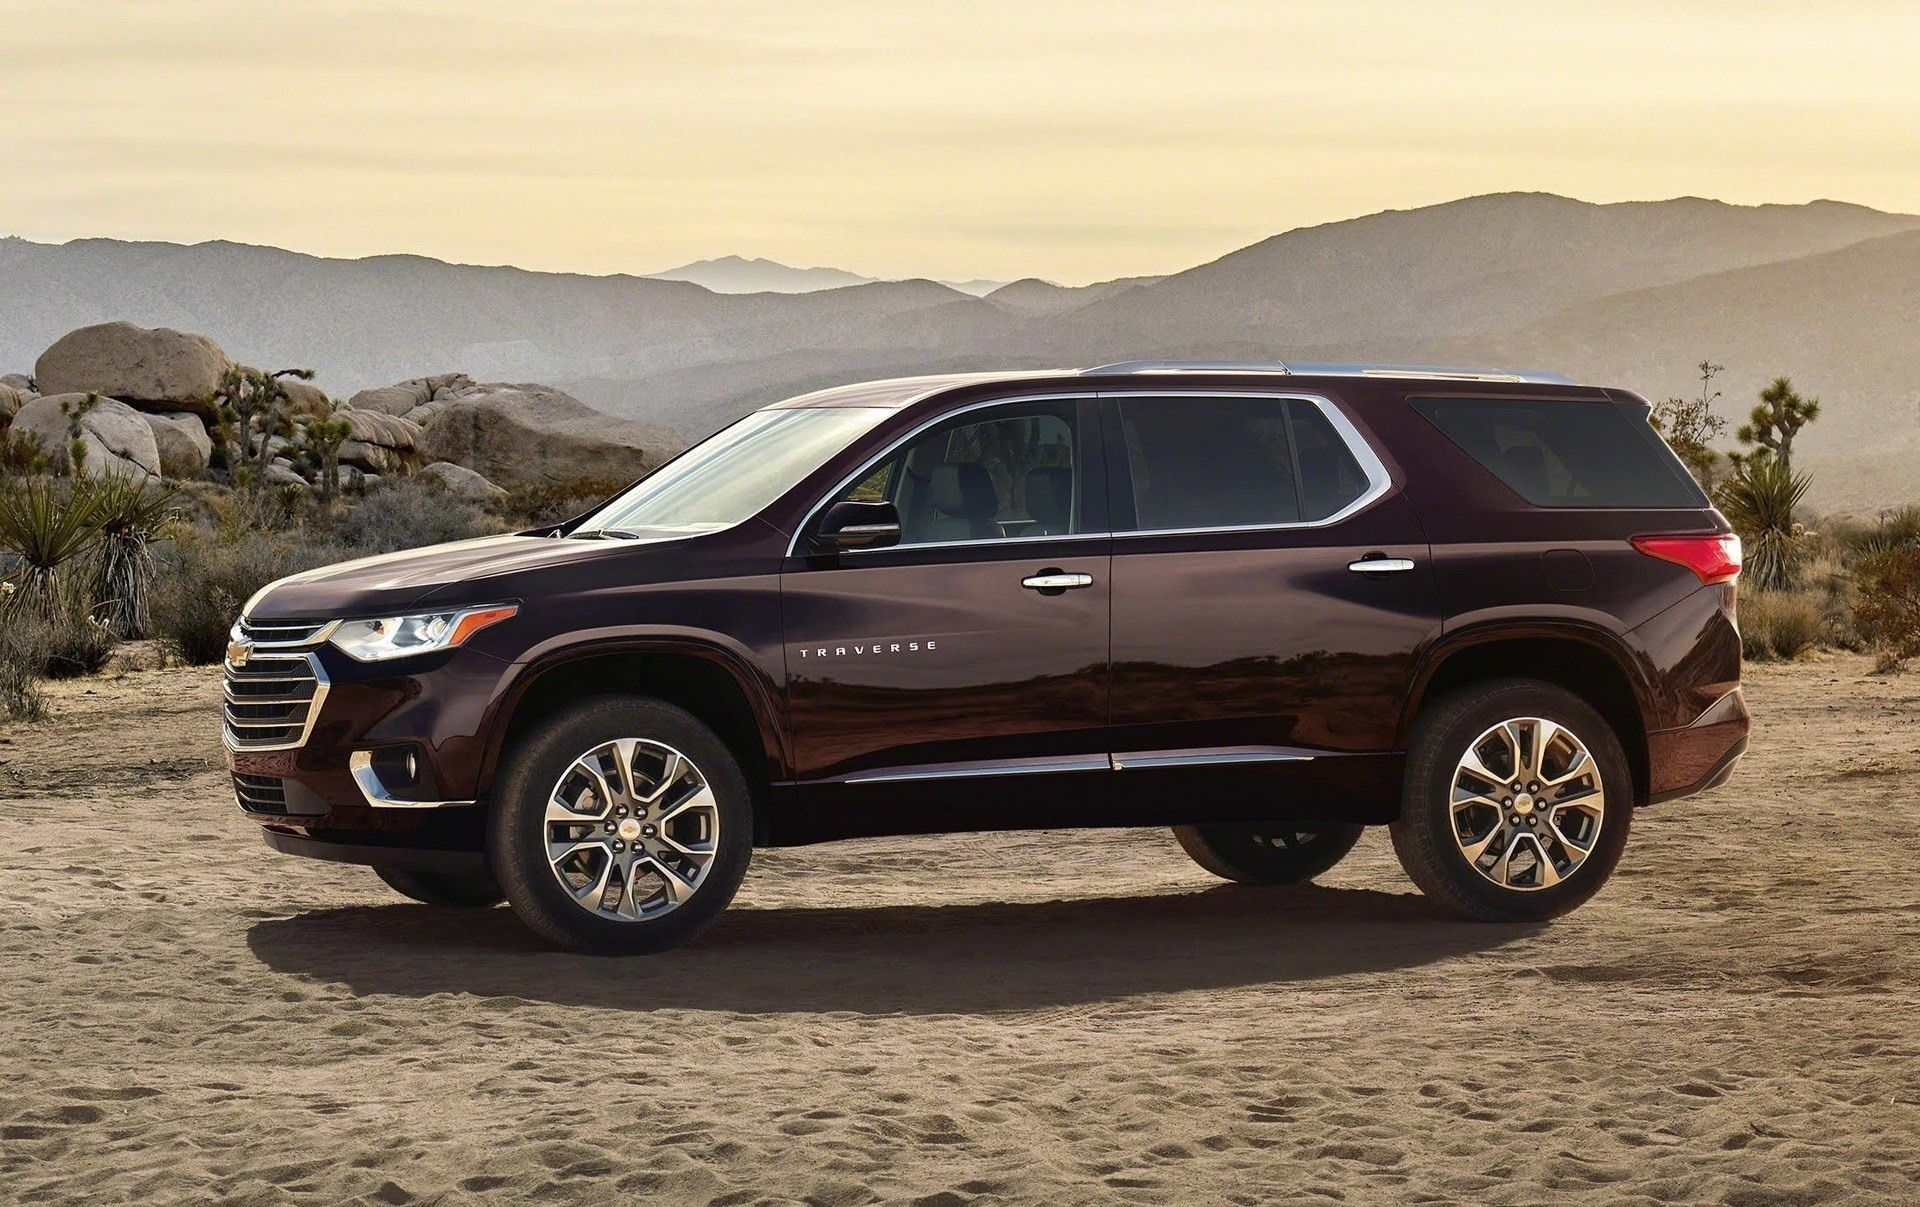 Best 2020 Chevrolet Traverse Price And Release Date Car Price 2019 Chevrolet Traverse Chevrolet Suv Chevrolet